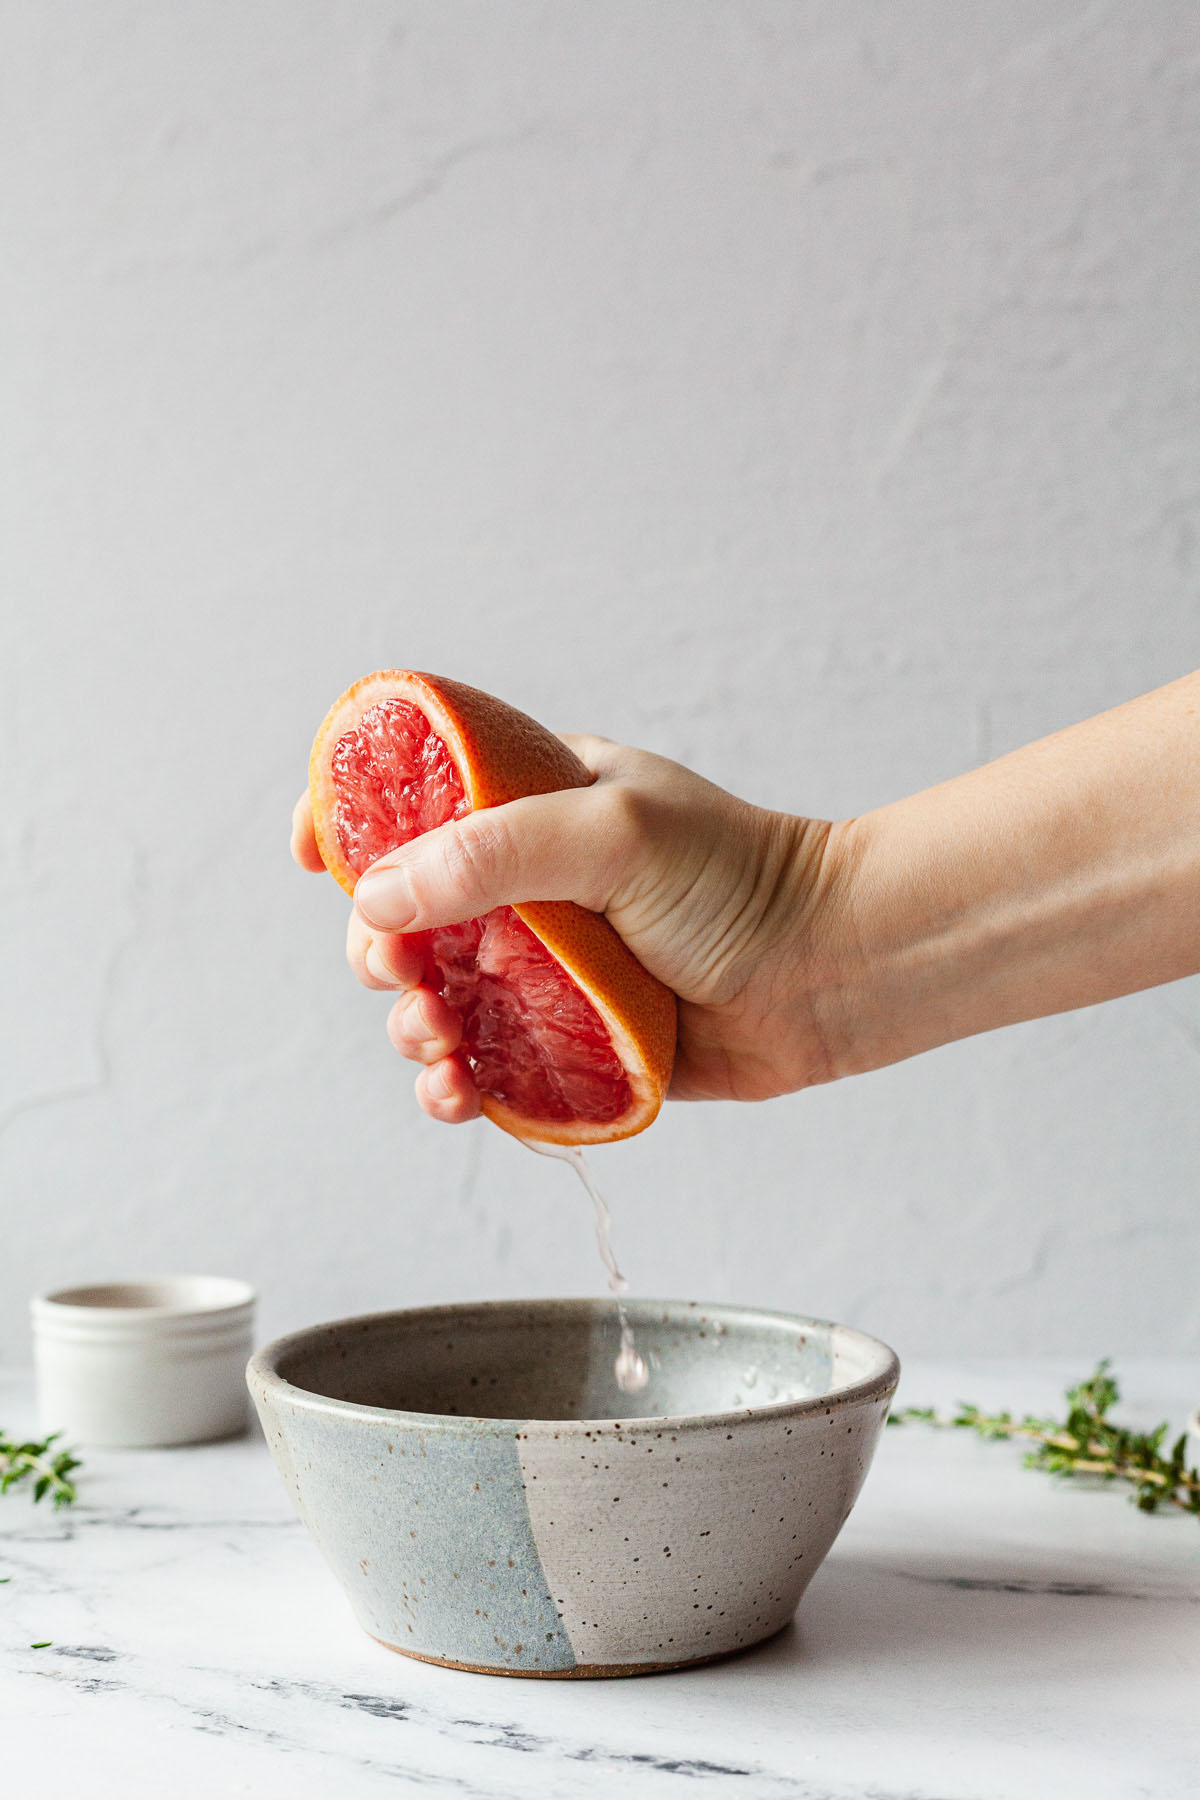 a hand squeezing juice from a grapefruit into a small bowl